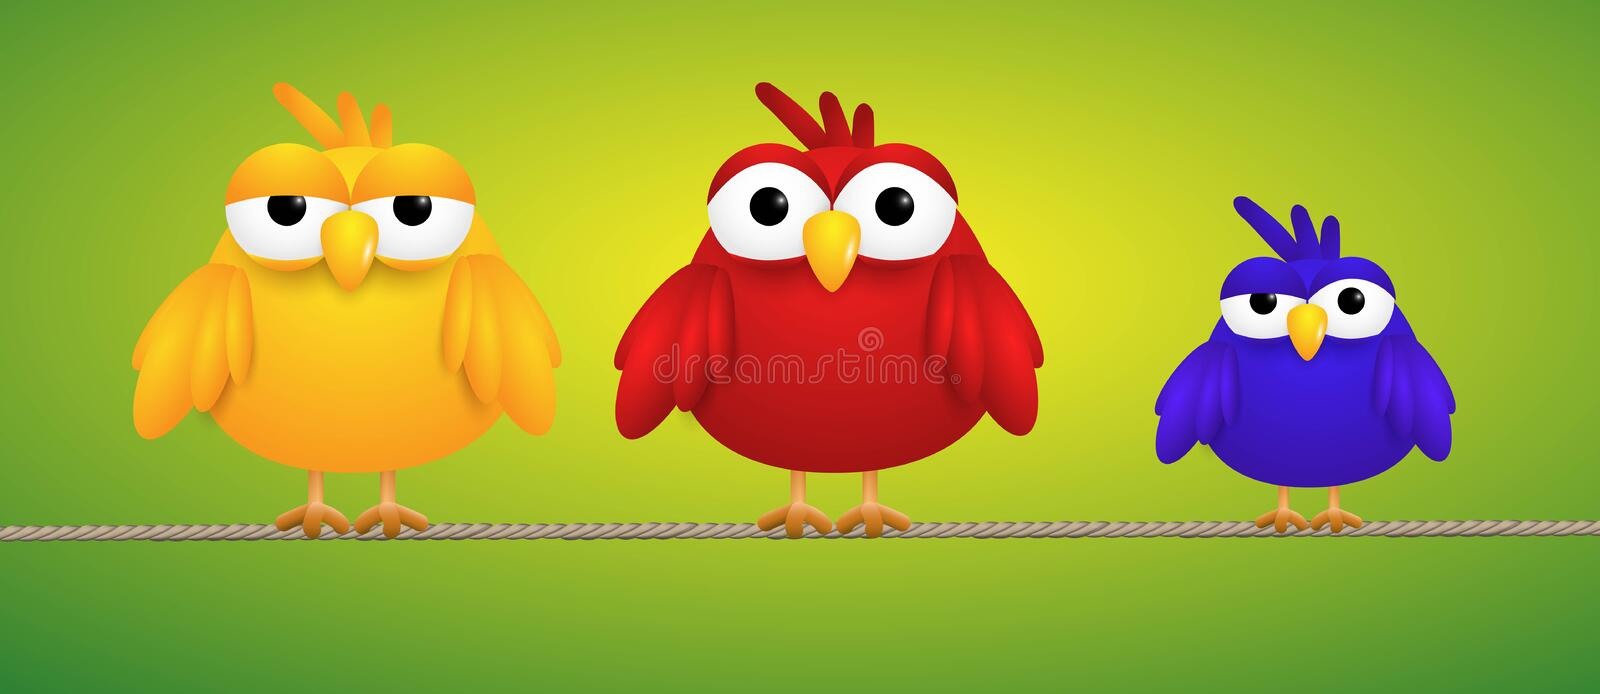 Tree small birds standing on a rope looking funny vector illustration